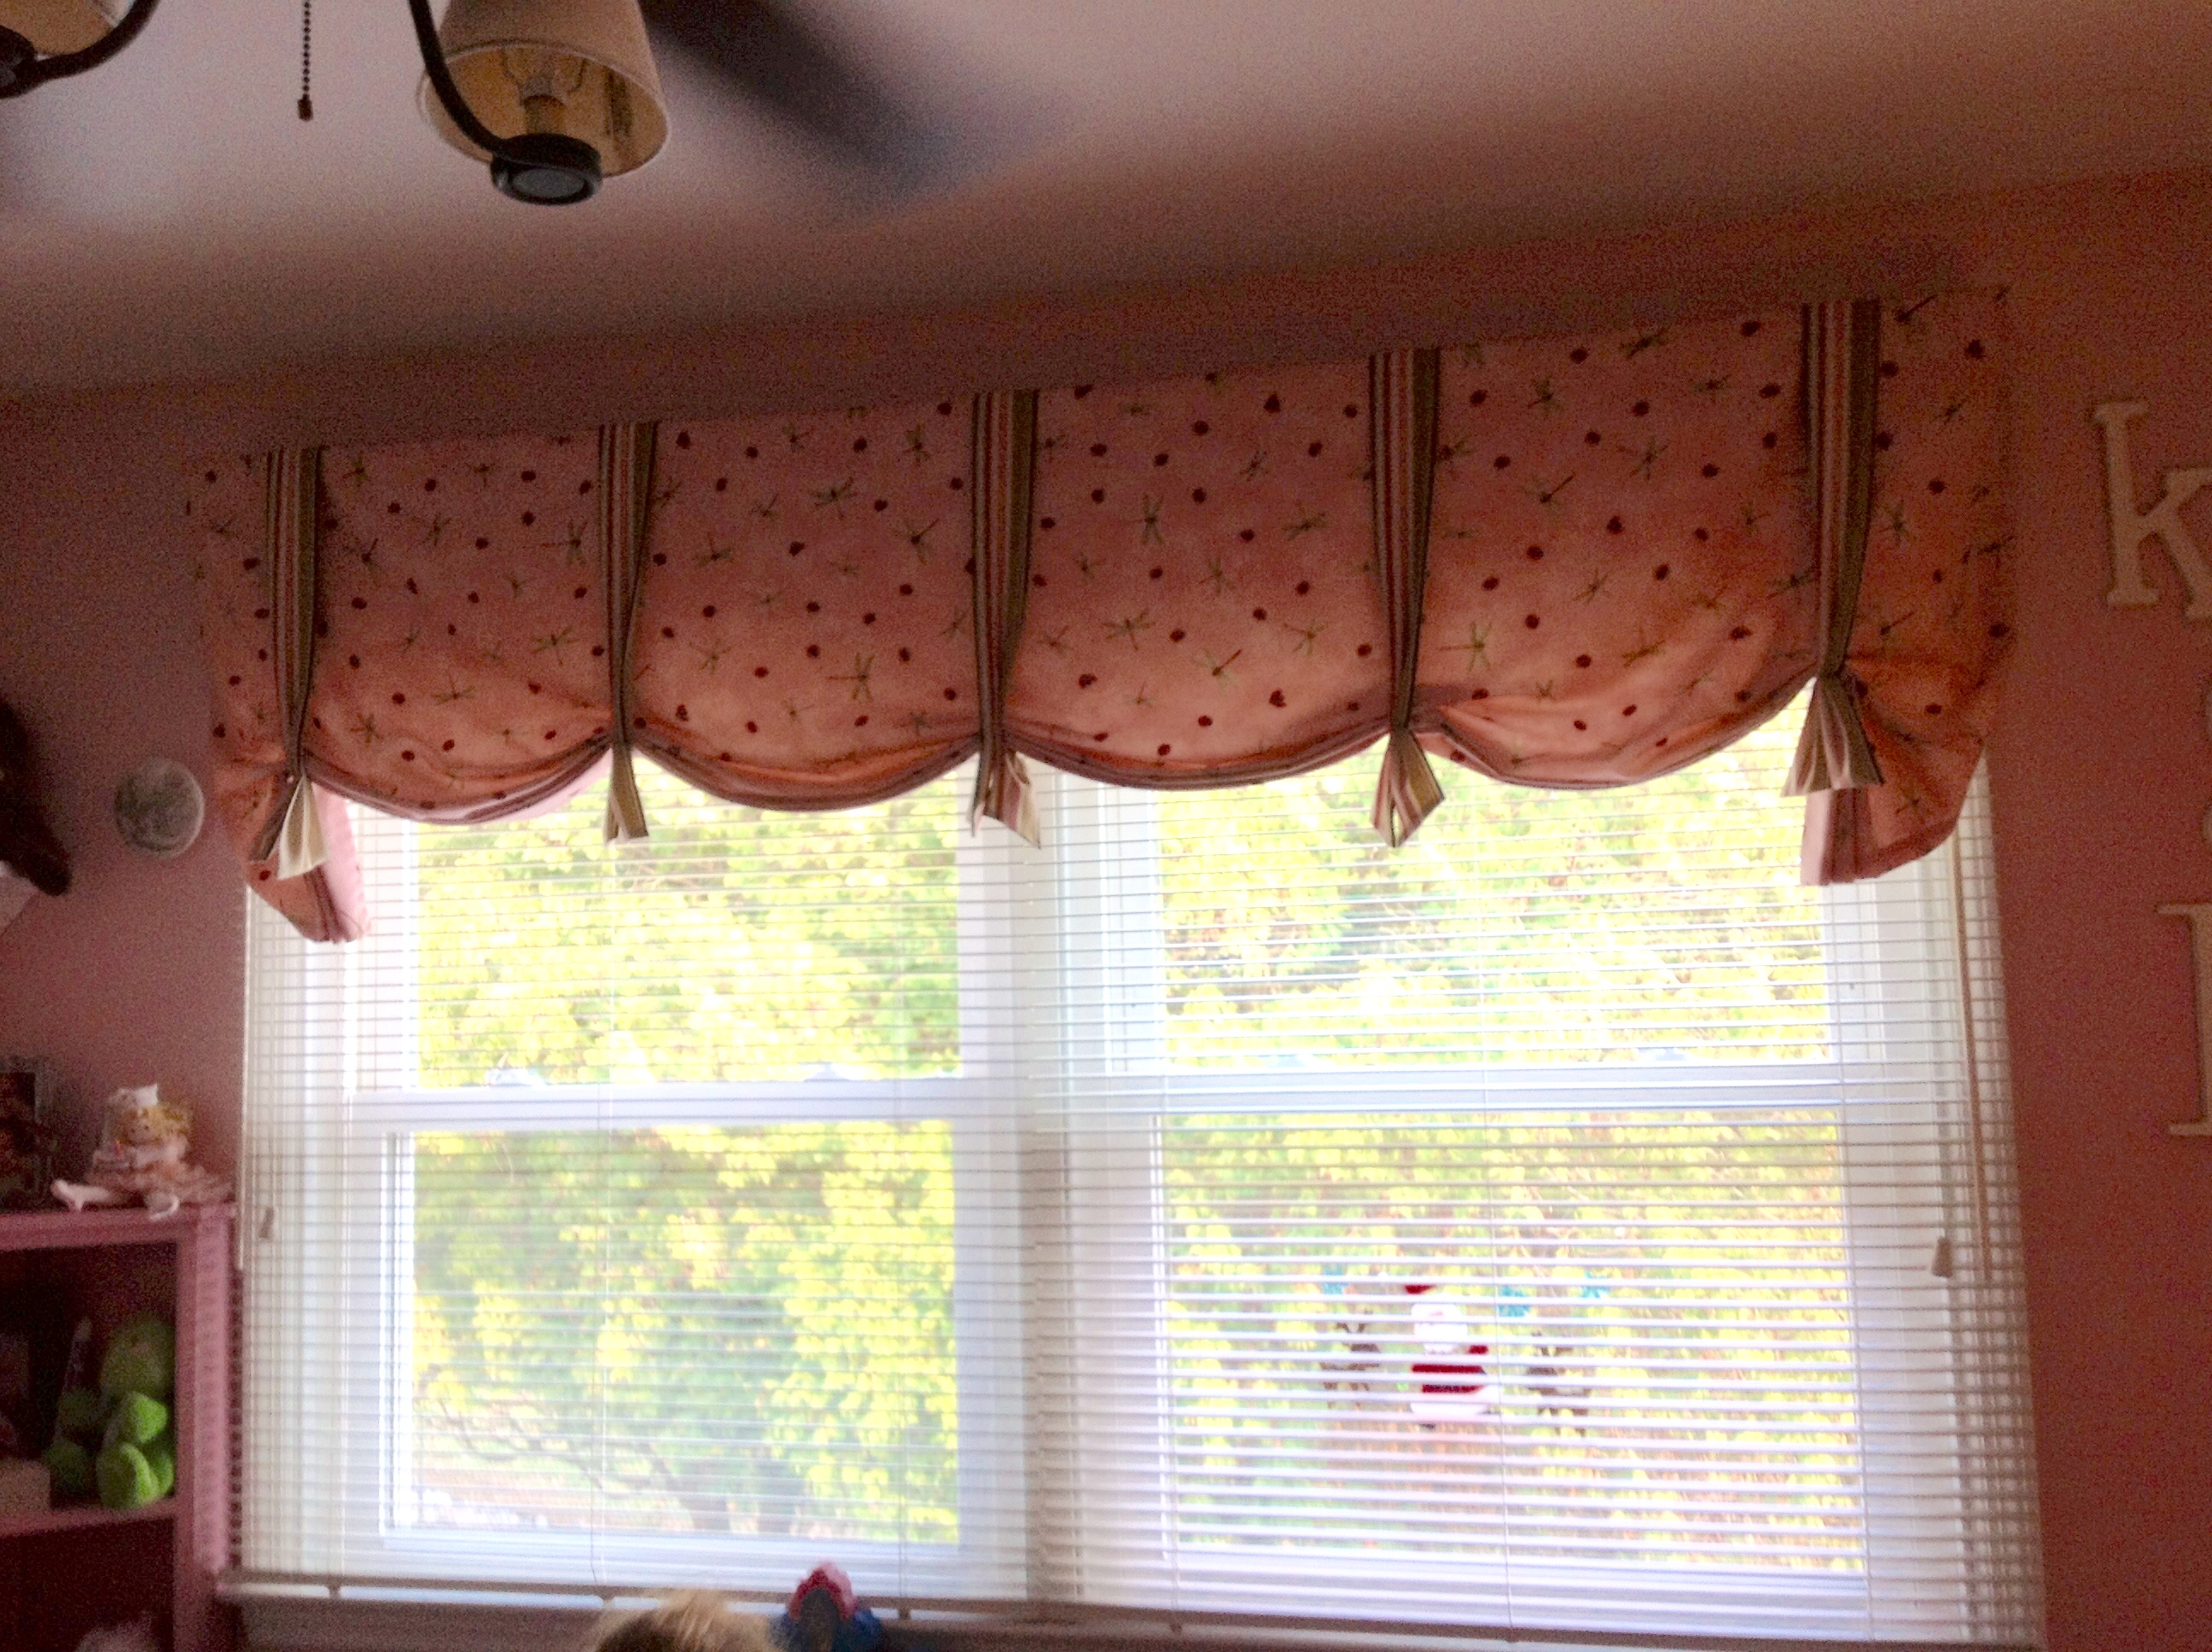 Dragonfly valance with ties for child's bedroom